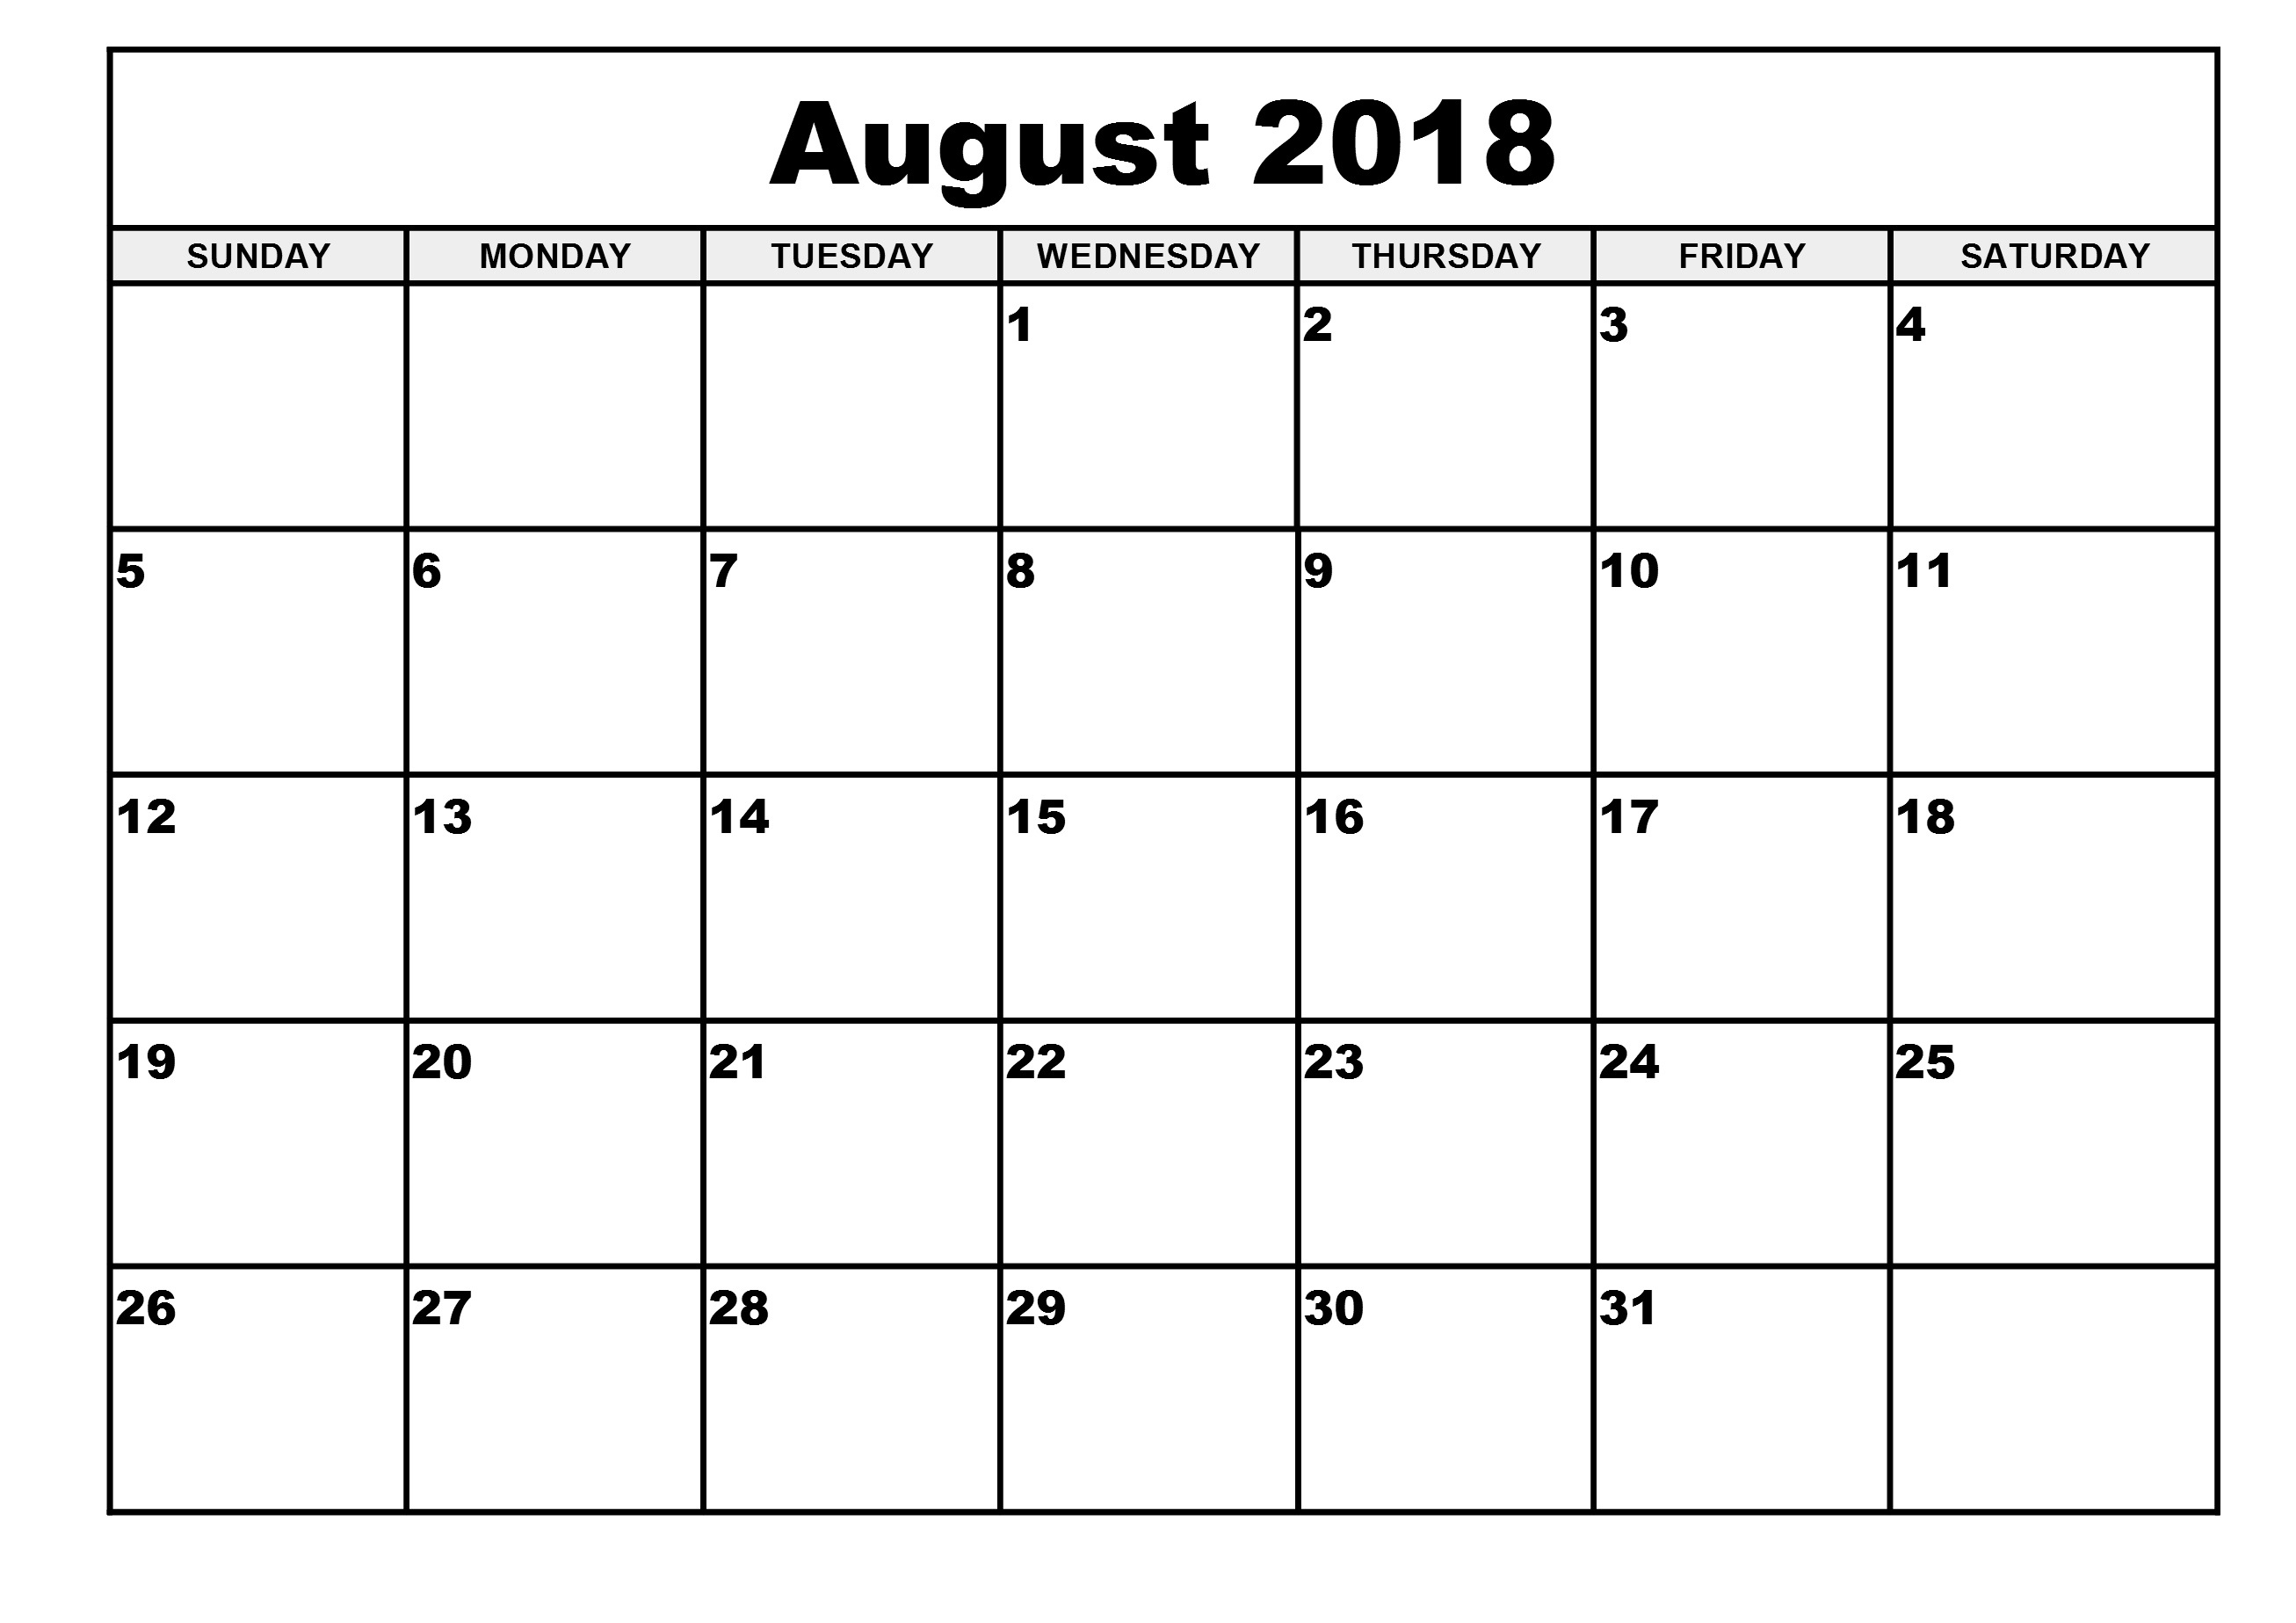 August 2018 Calendar | 2017 Calendar With Holidays